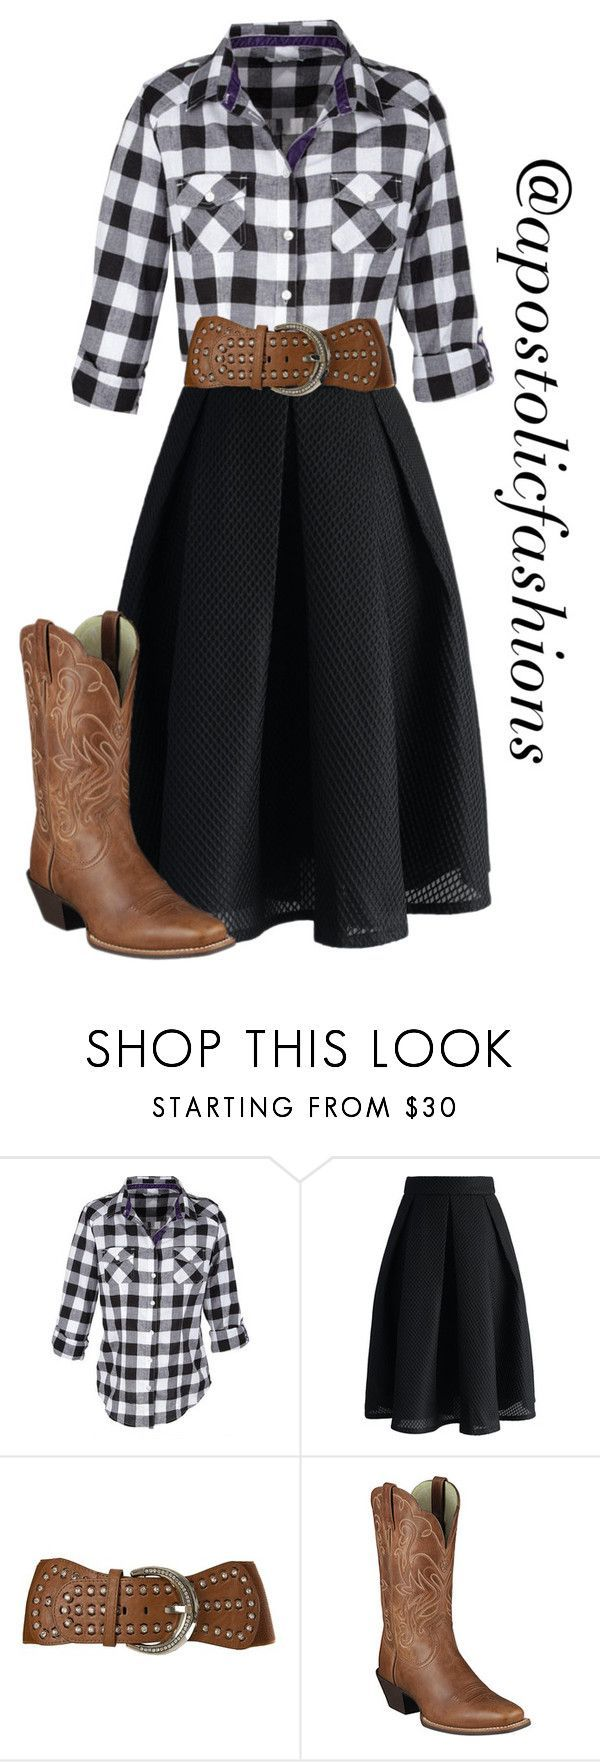 """Apostolic Fashions #1381"" by apostolicfashions ❤️ liked on Polyvore featuring Chicwish, Angel Ranch, Ariat, modestlykay and modestlywhit"